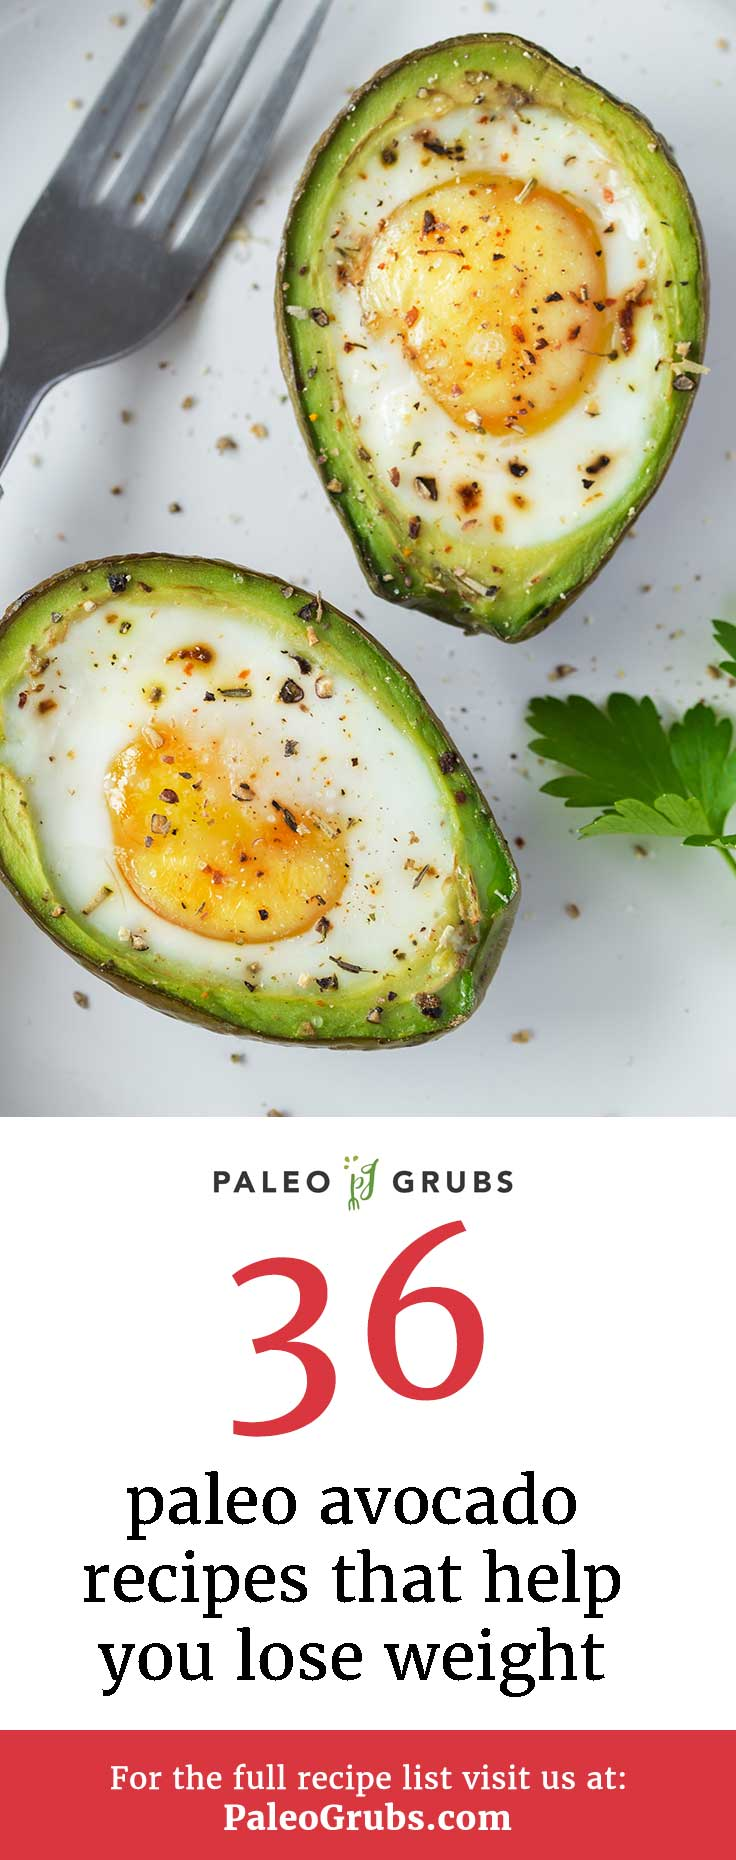 Here are some tasty, nutrient-dense avocado recipes that also can help with your weight loss efforts.